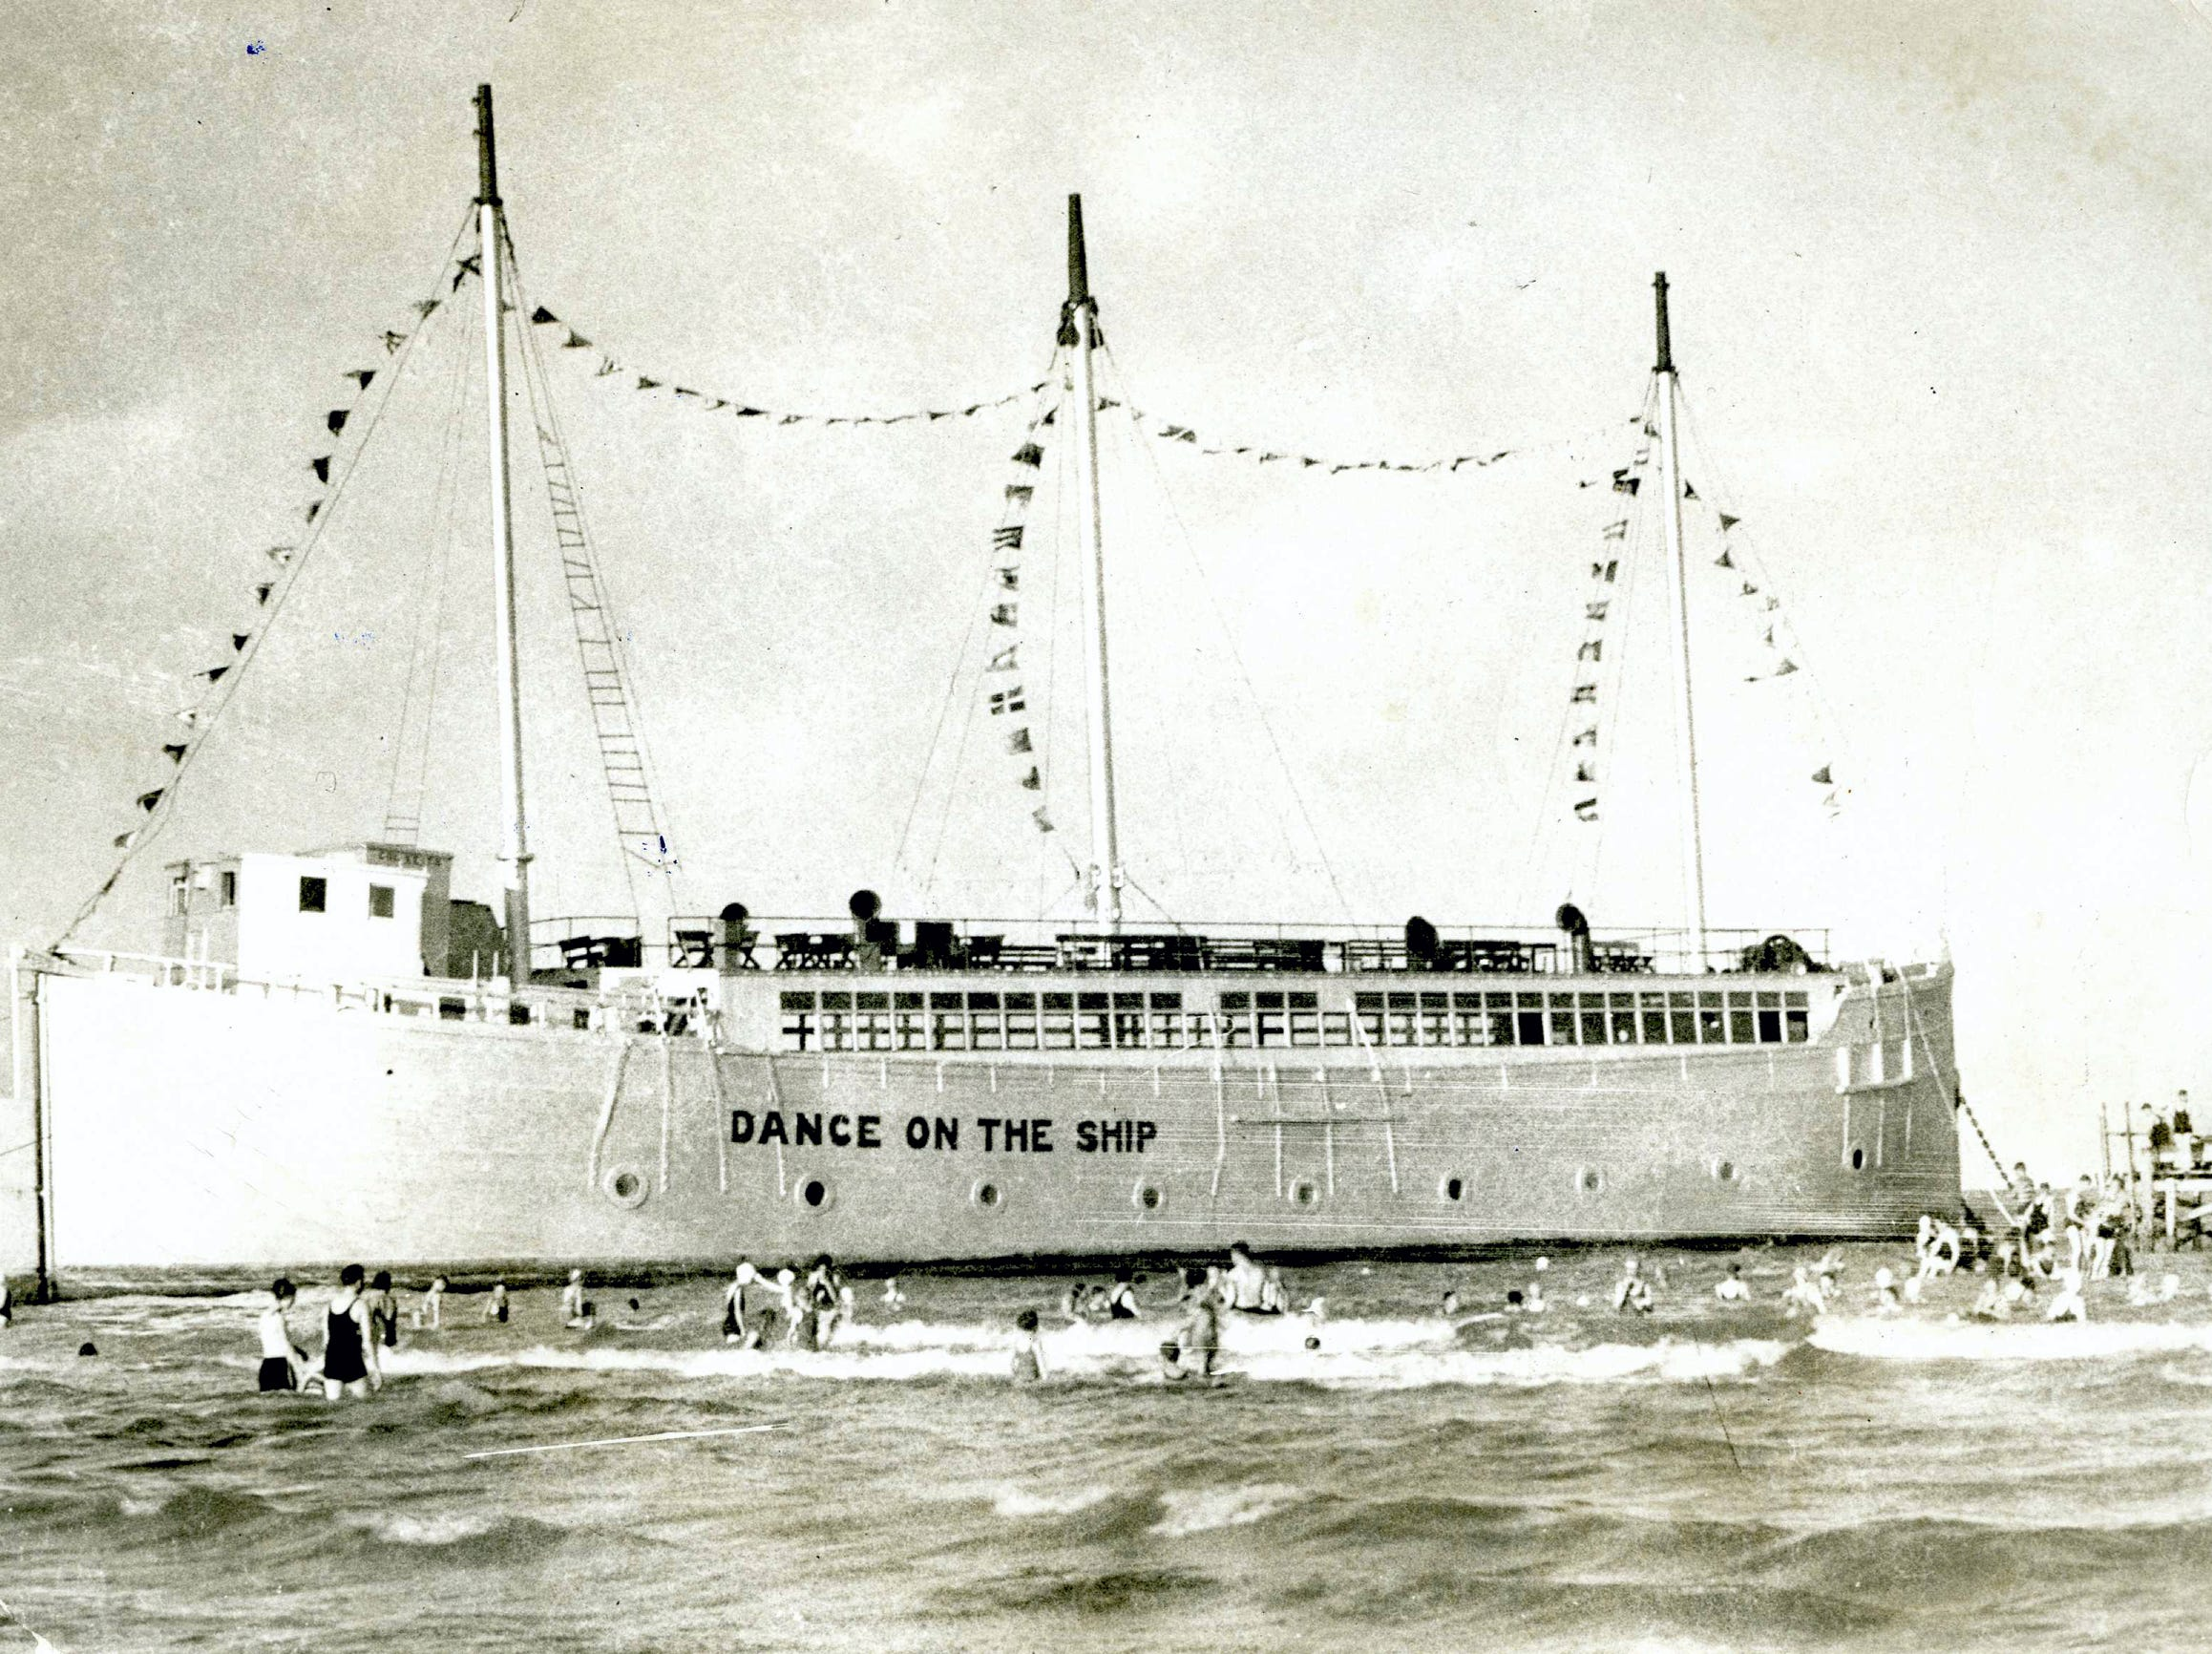 """The Ship"" was a popular dance spot on Corpus Christi's North Beach, seen here circa 1930."